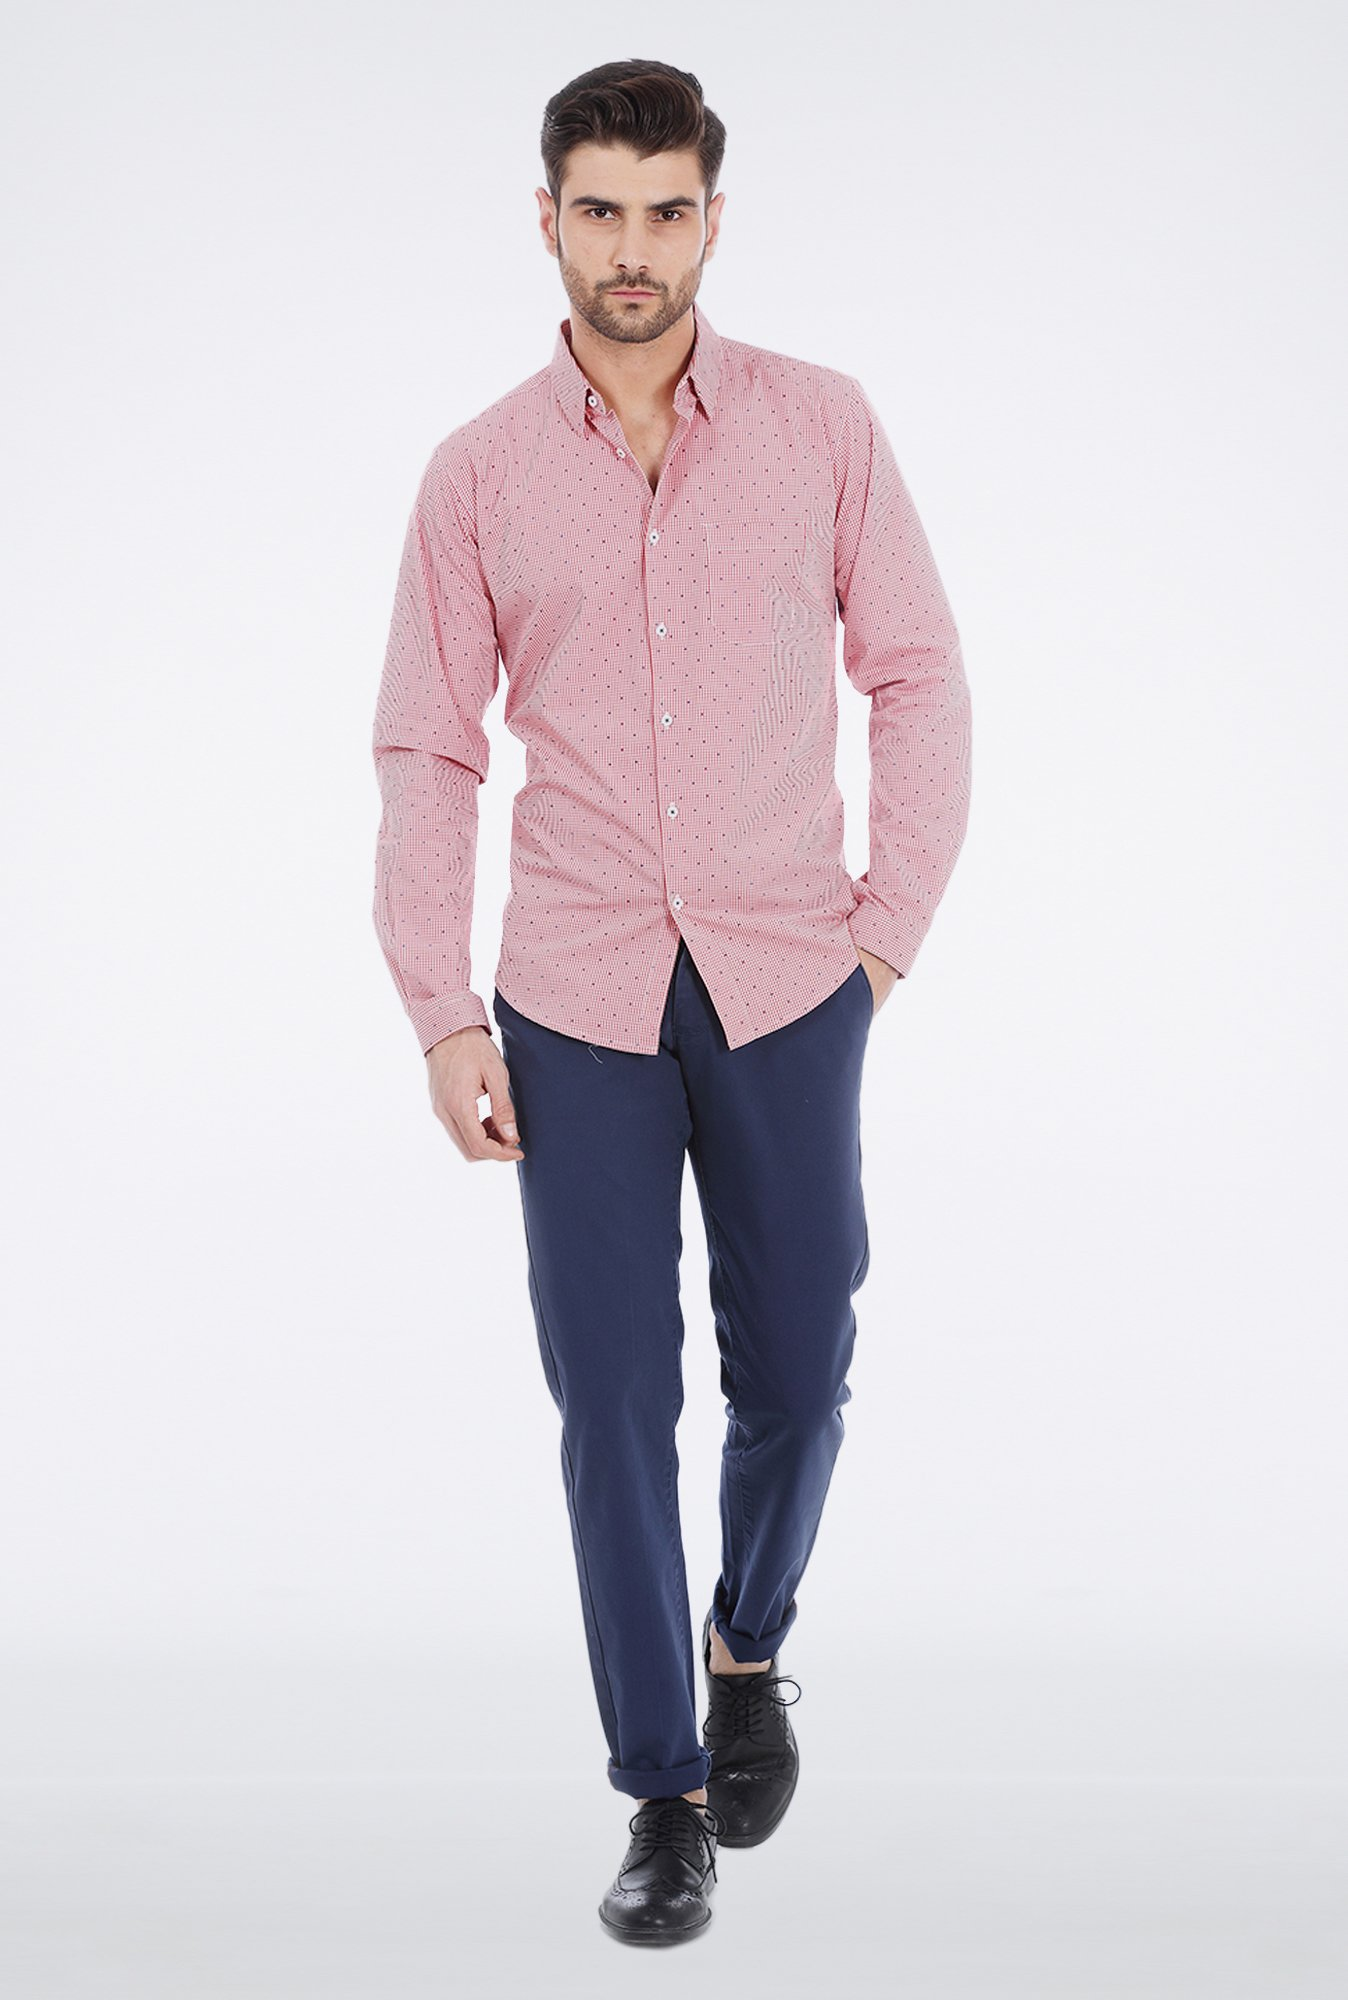 Basics Red Jacquard Formal Shirt